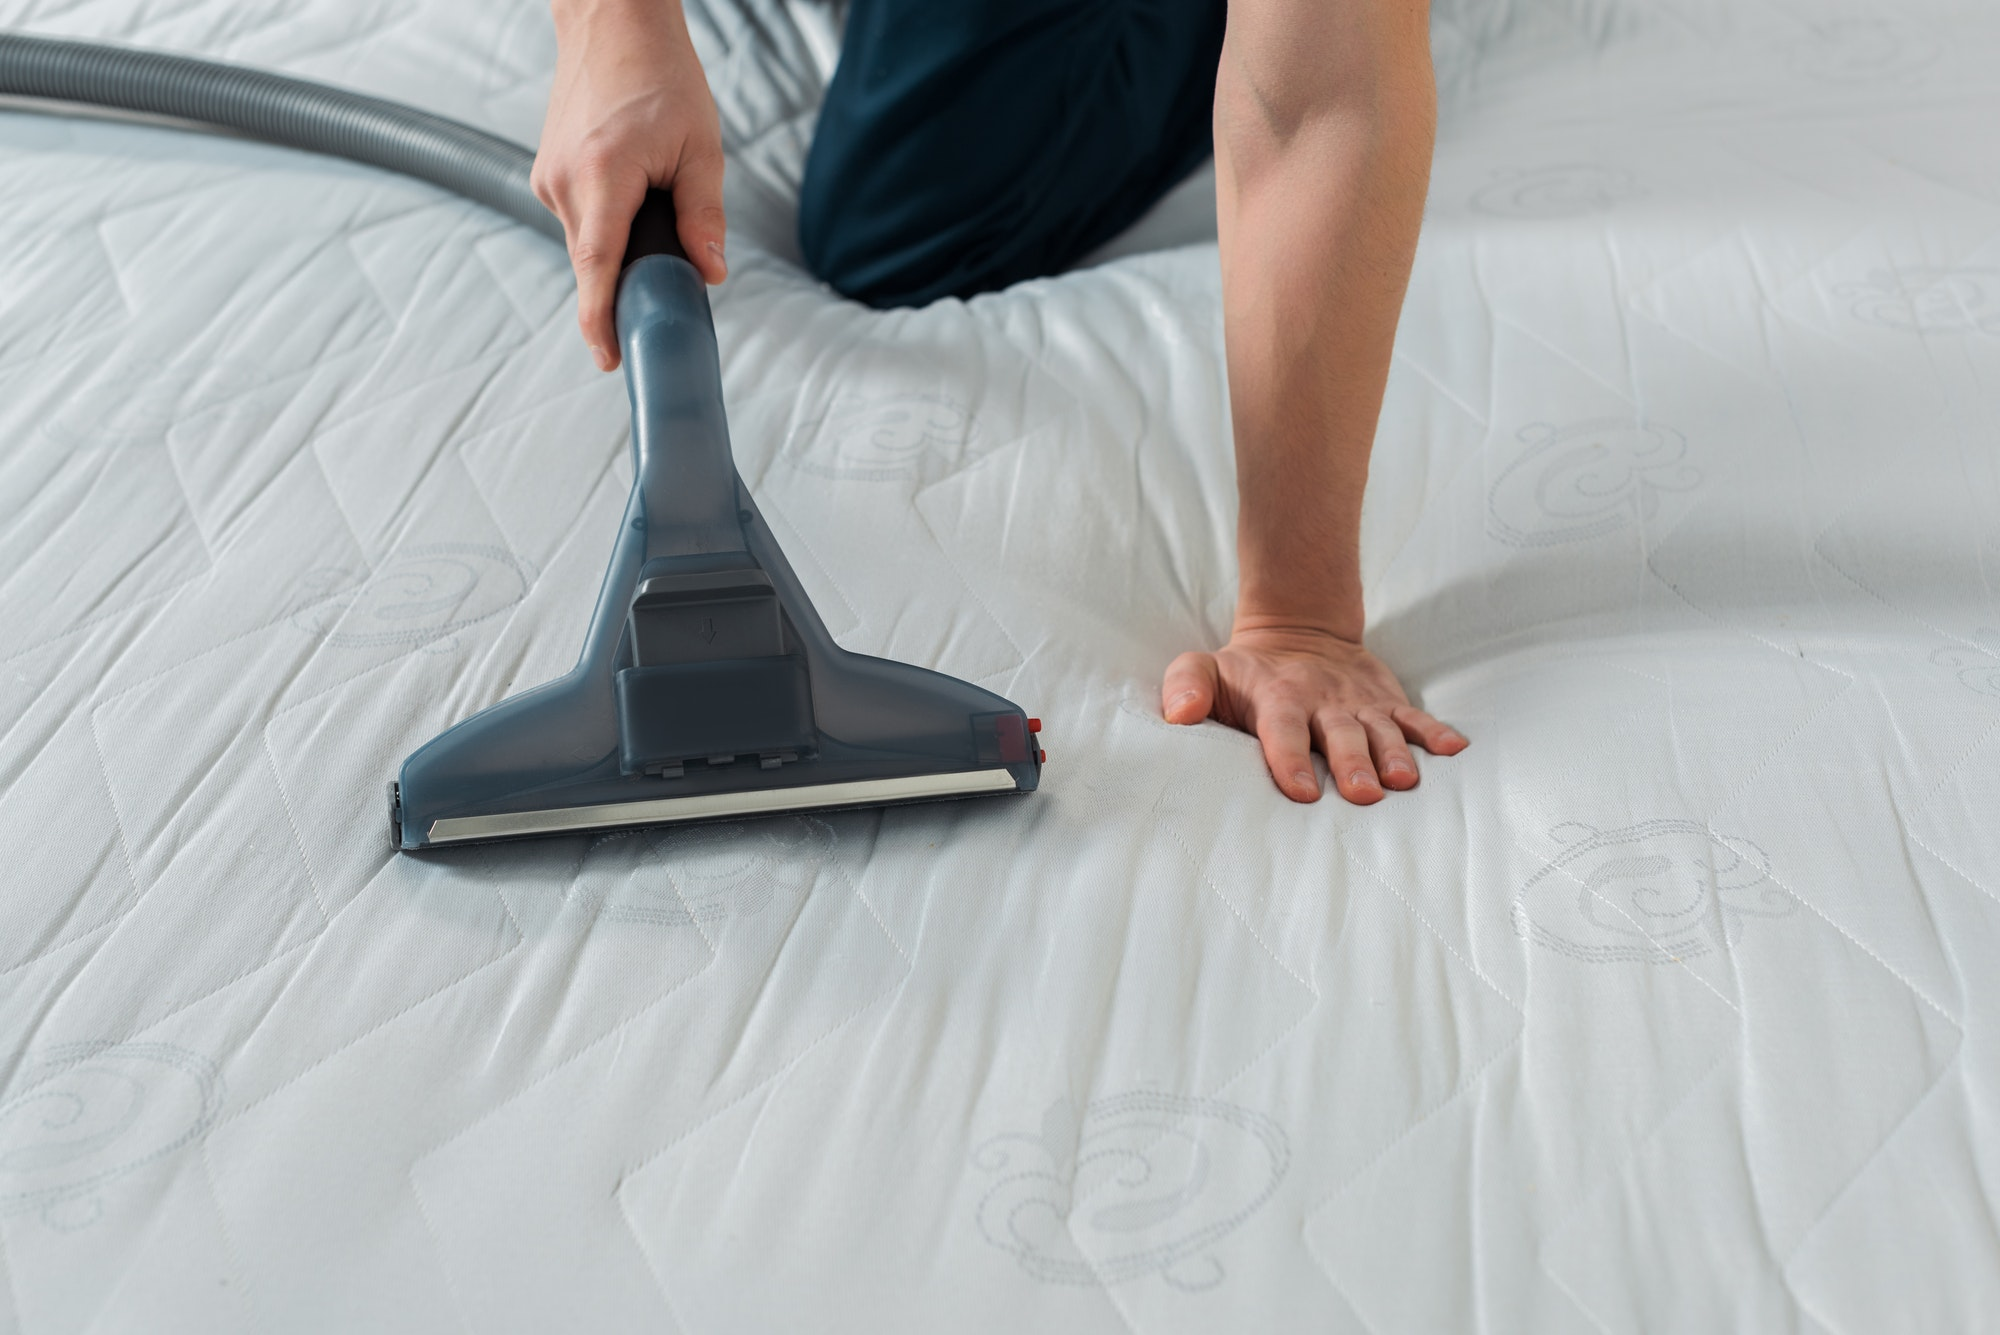 cropped view of cleaner holding vacuum with handle while cleaning mattress